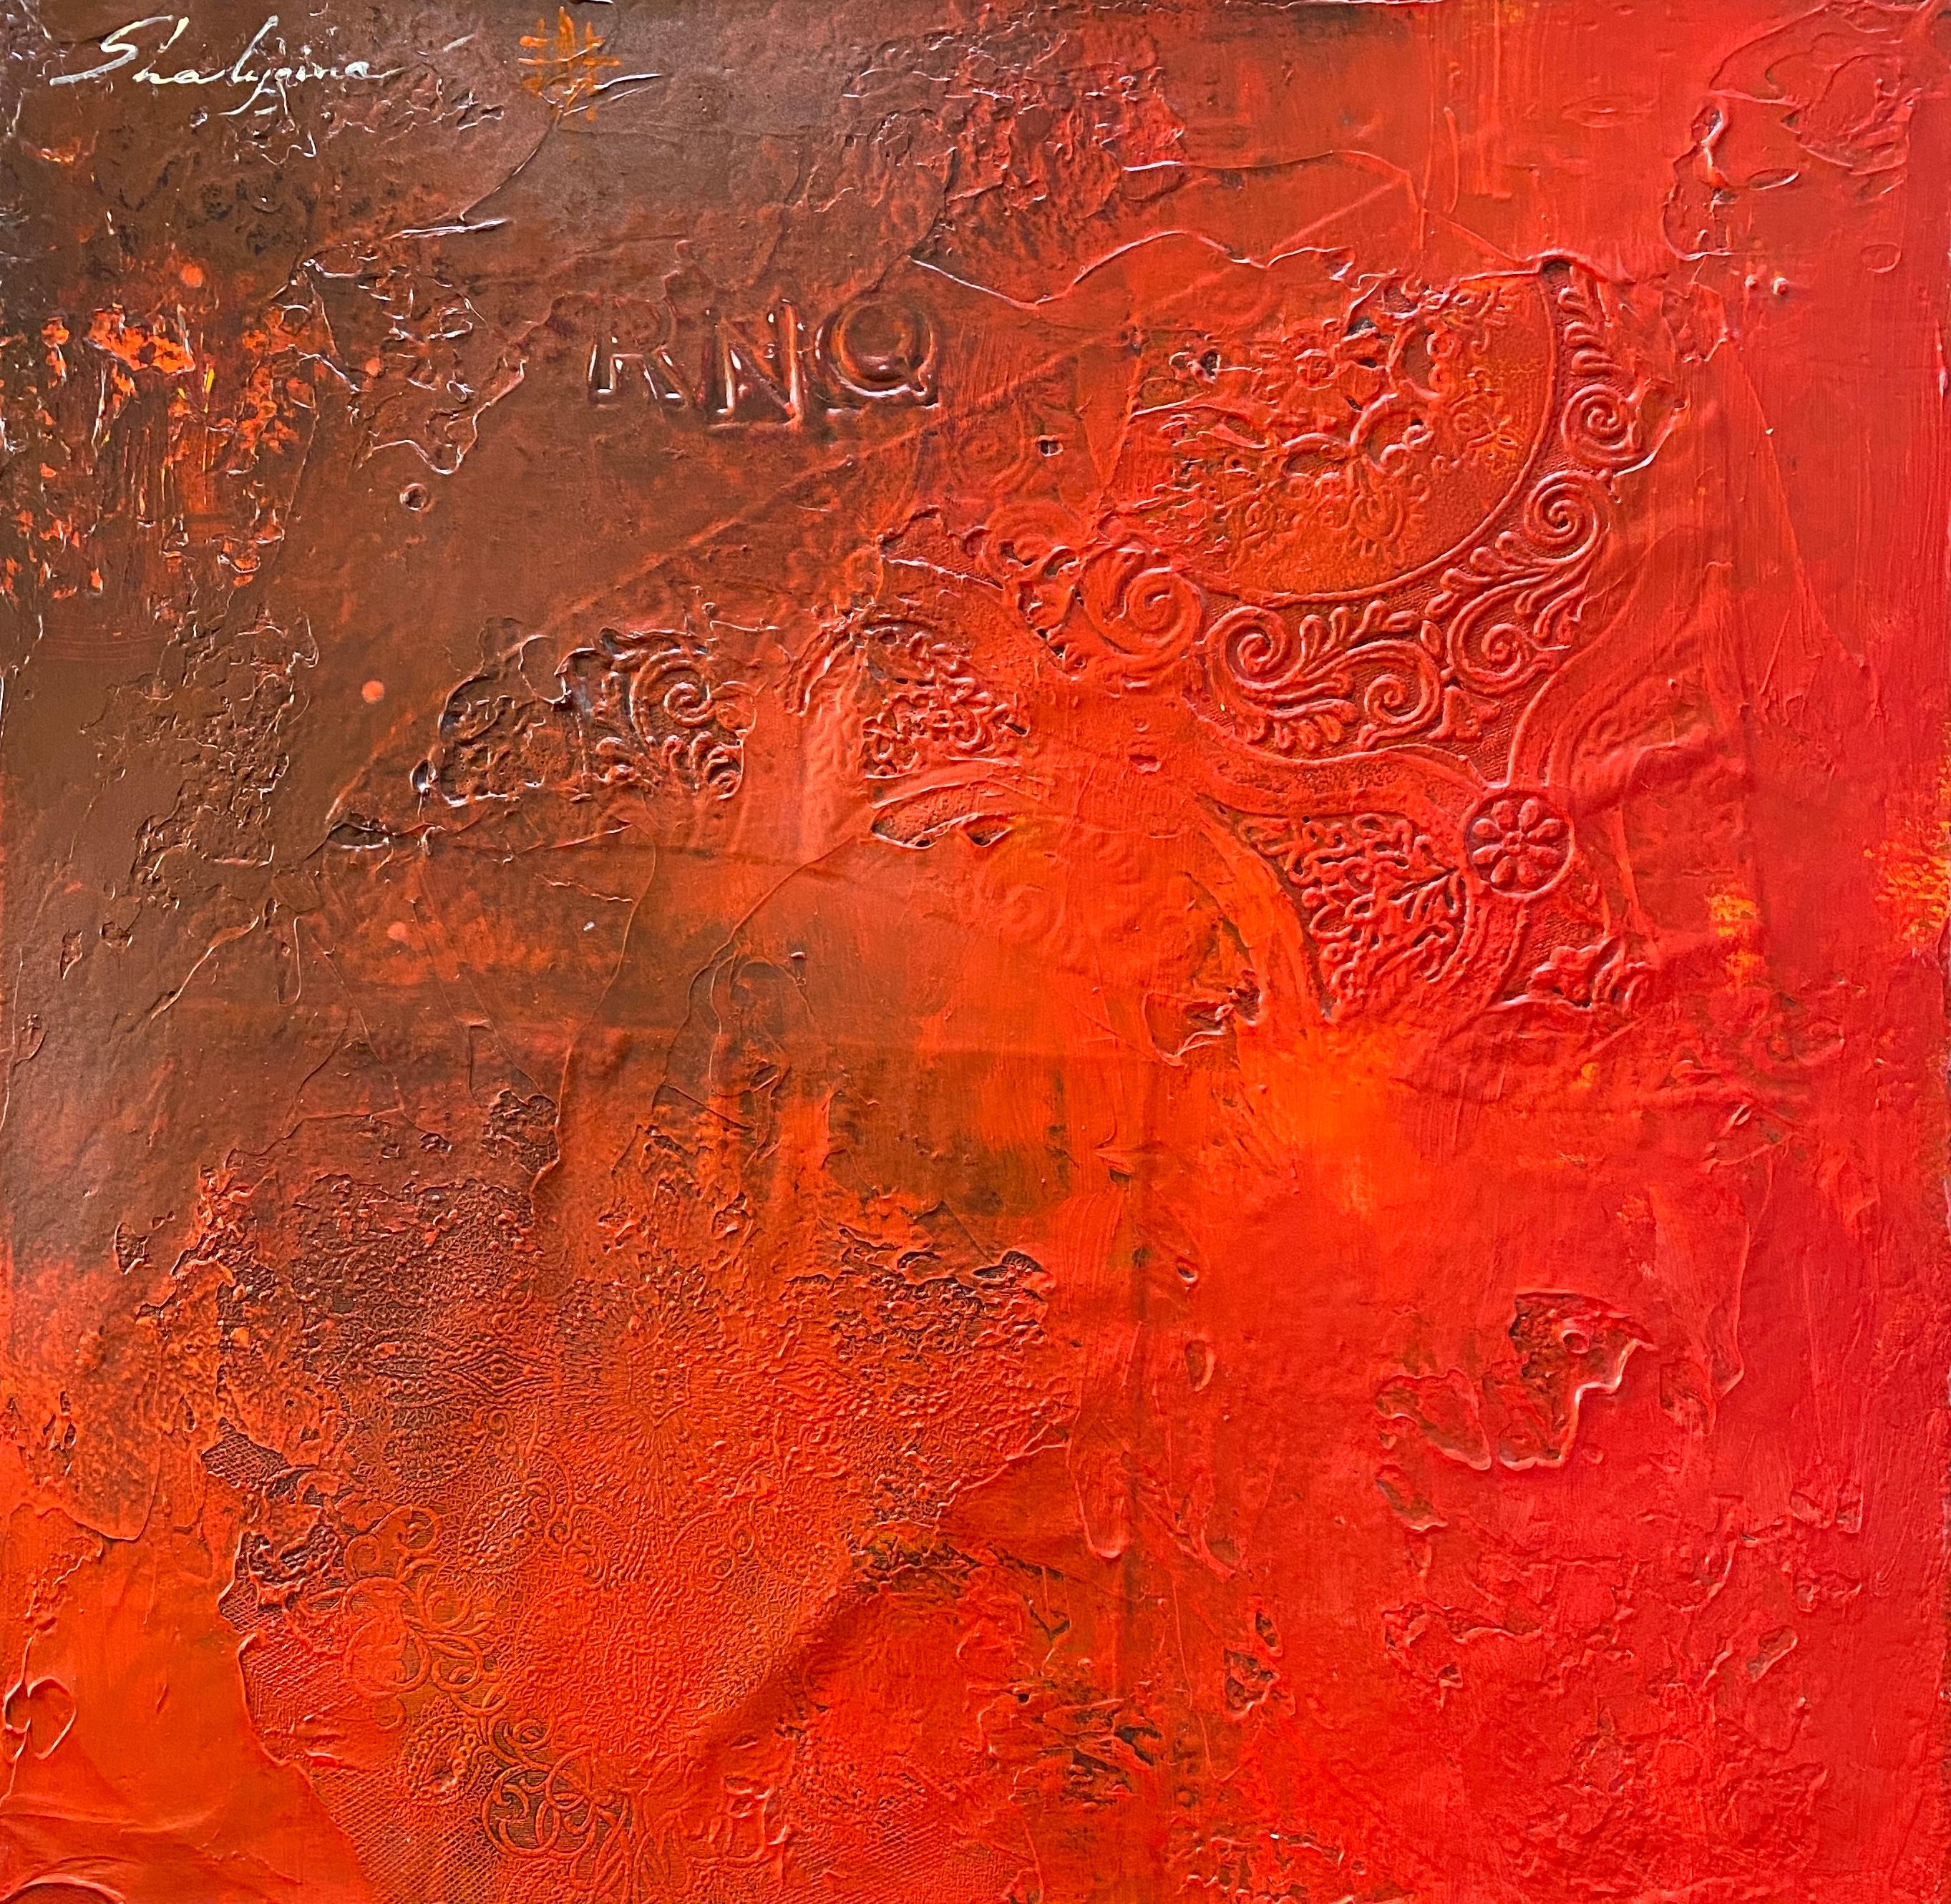 Minimalist Red Orange Contemporary Textural Abstract Mixed Media Painting 20x20